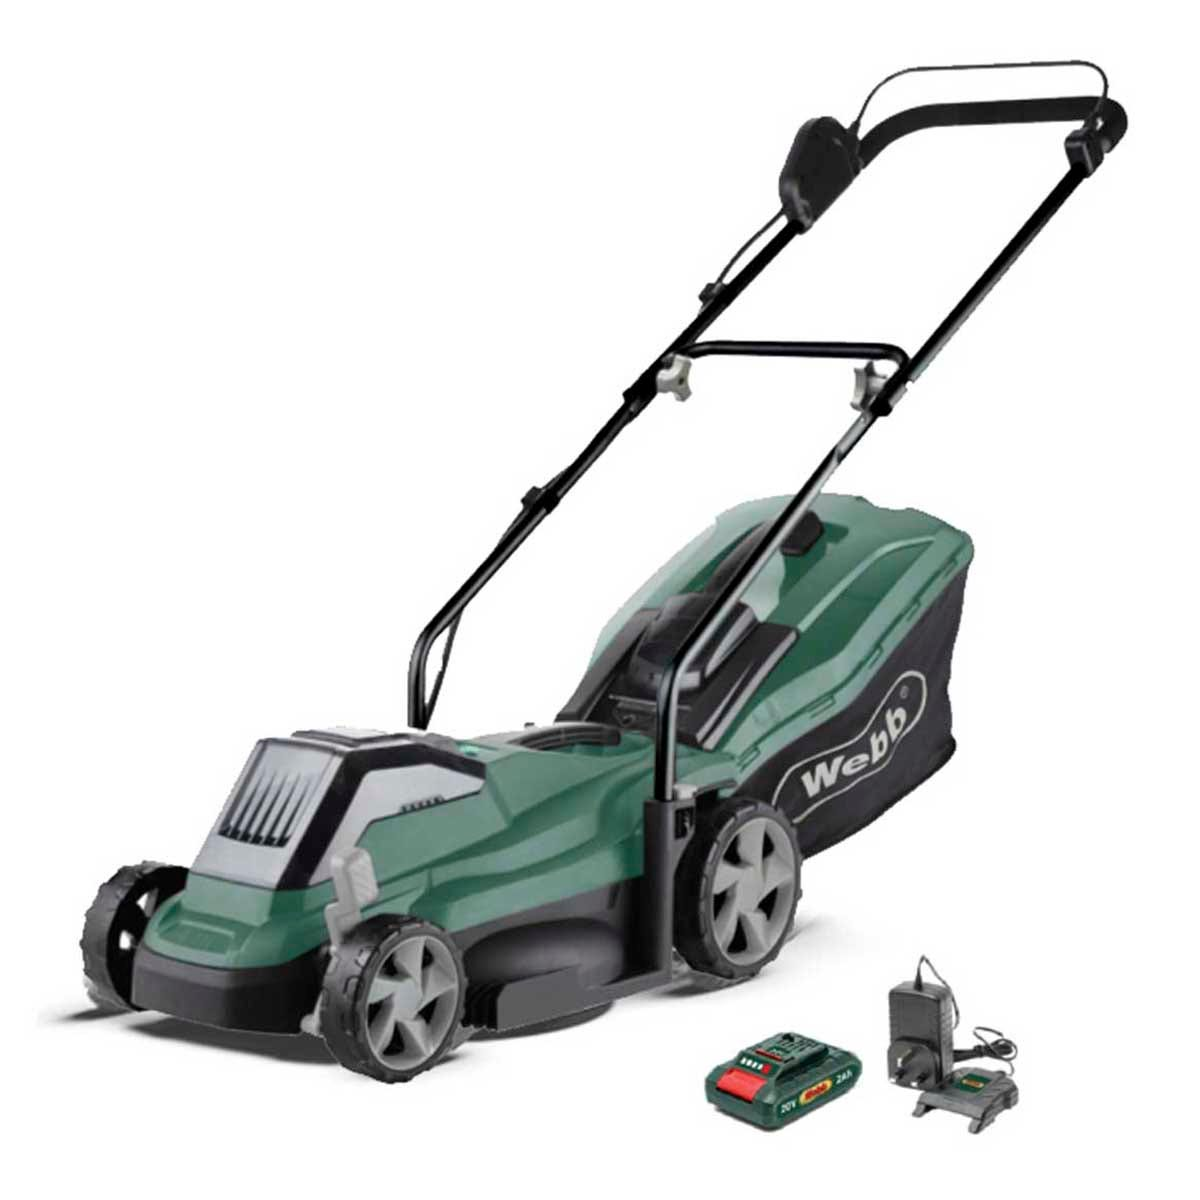 Greenworks Webb 33cm (14'') Cordless 20v Rotary Lawn Mower with 20v 4Ah Battery and Charger